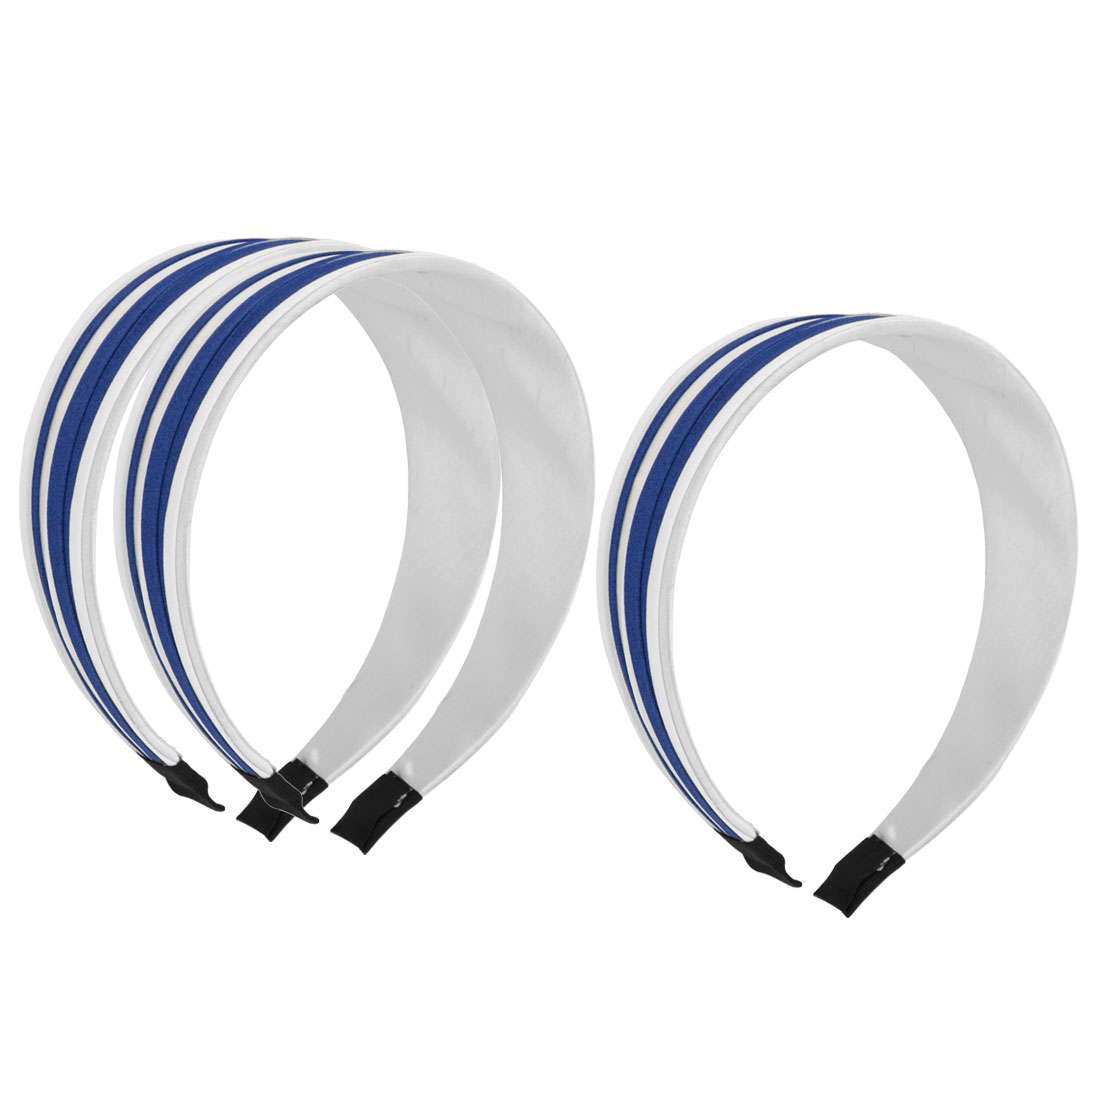 "3 Pcs Blue White Nylon Cloth Wrap Headdressing 1.5"" Width Plastic Frame Wide Hair Band Hair Hoop for Lady"